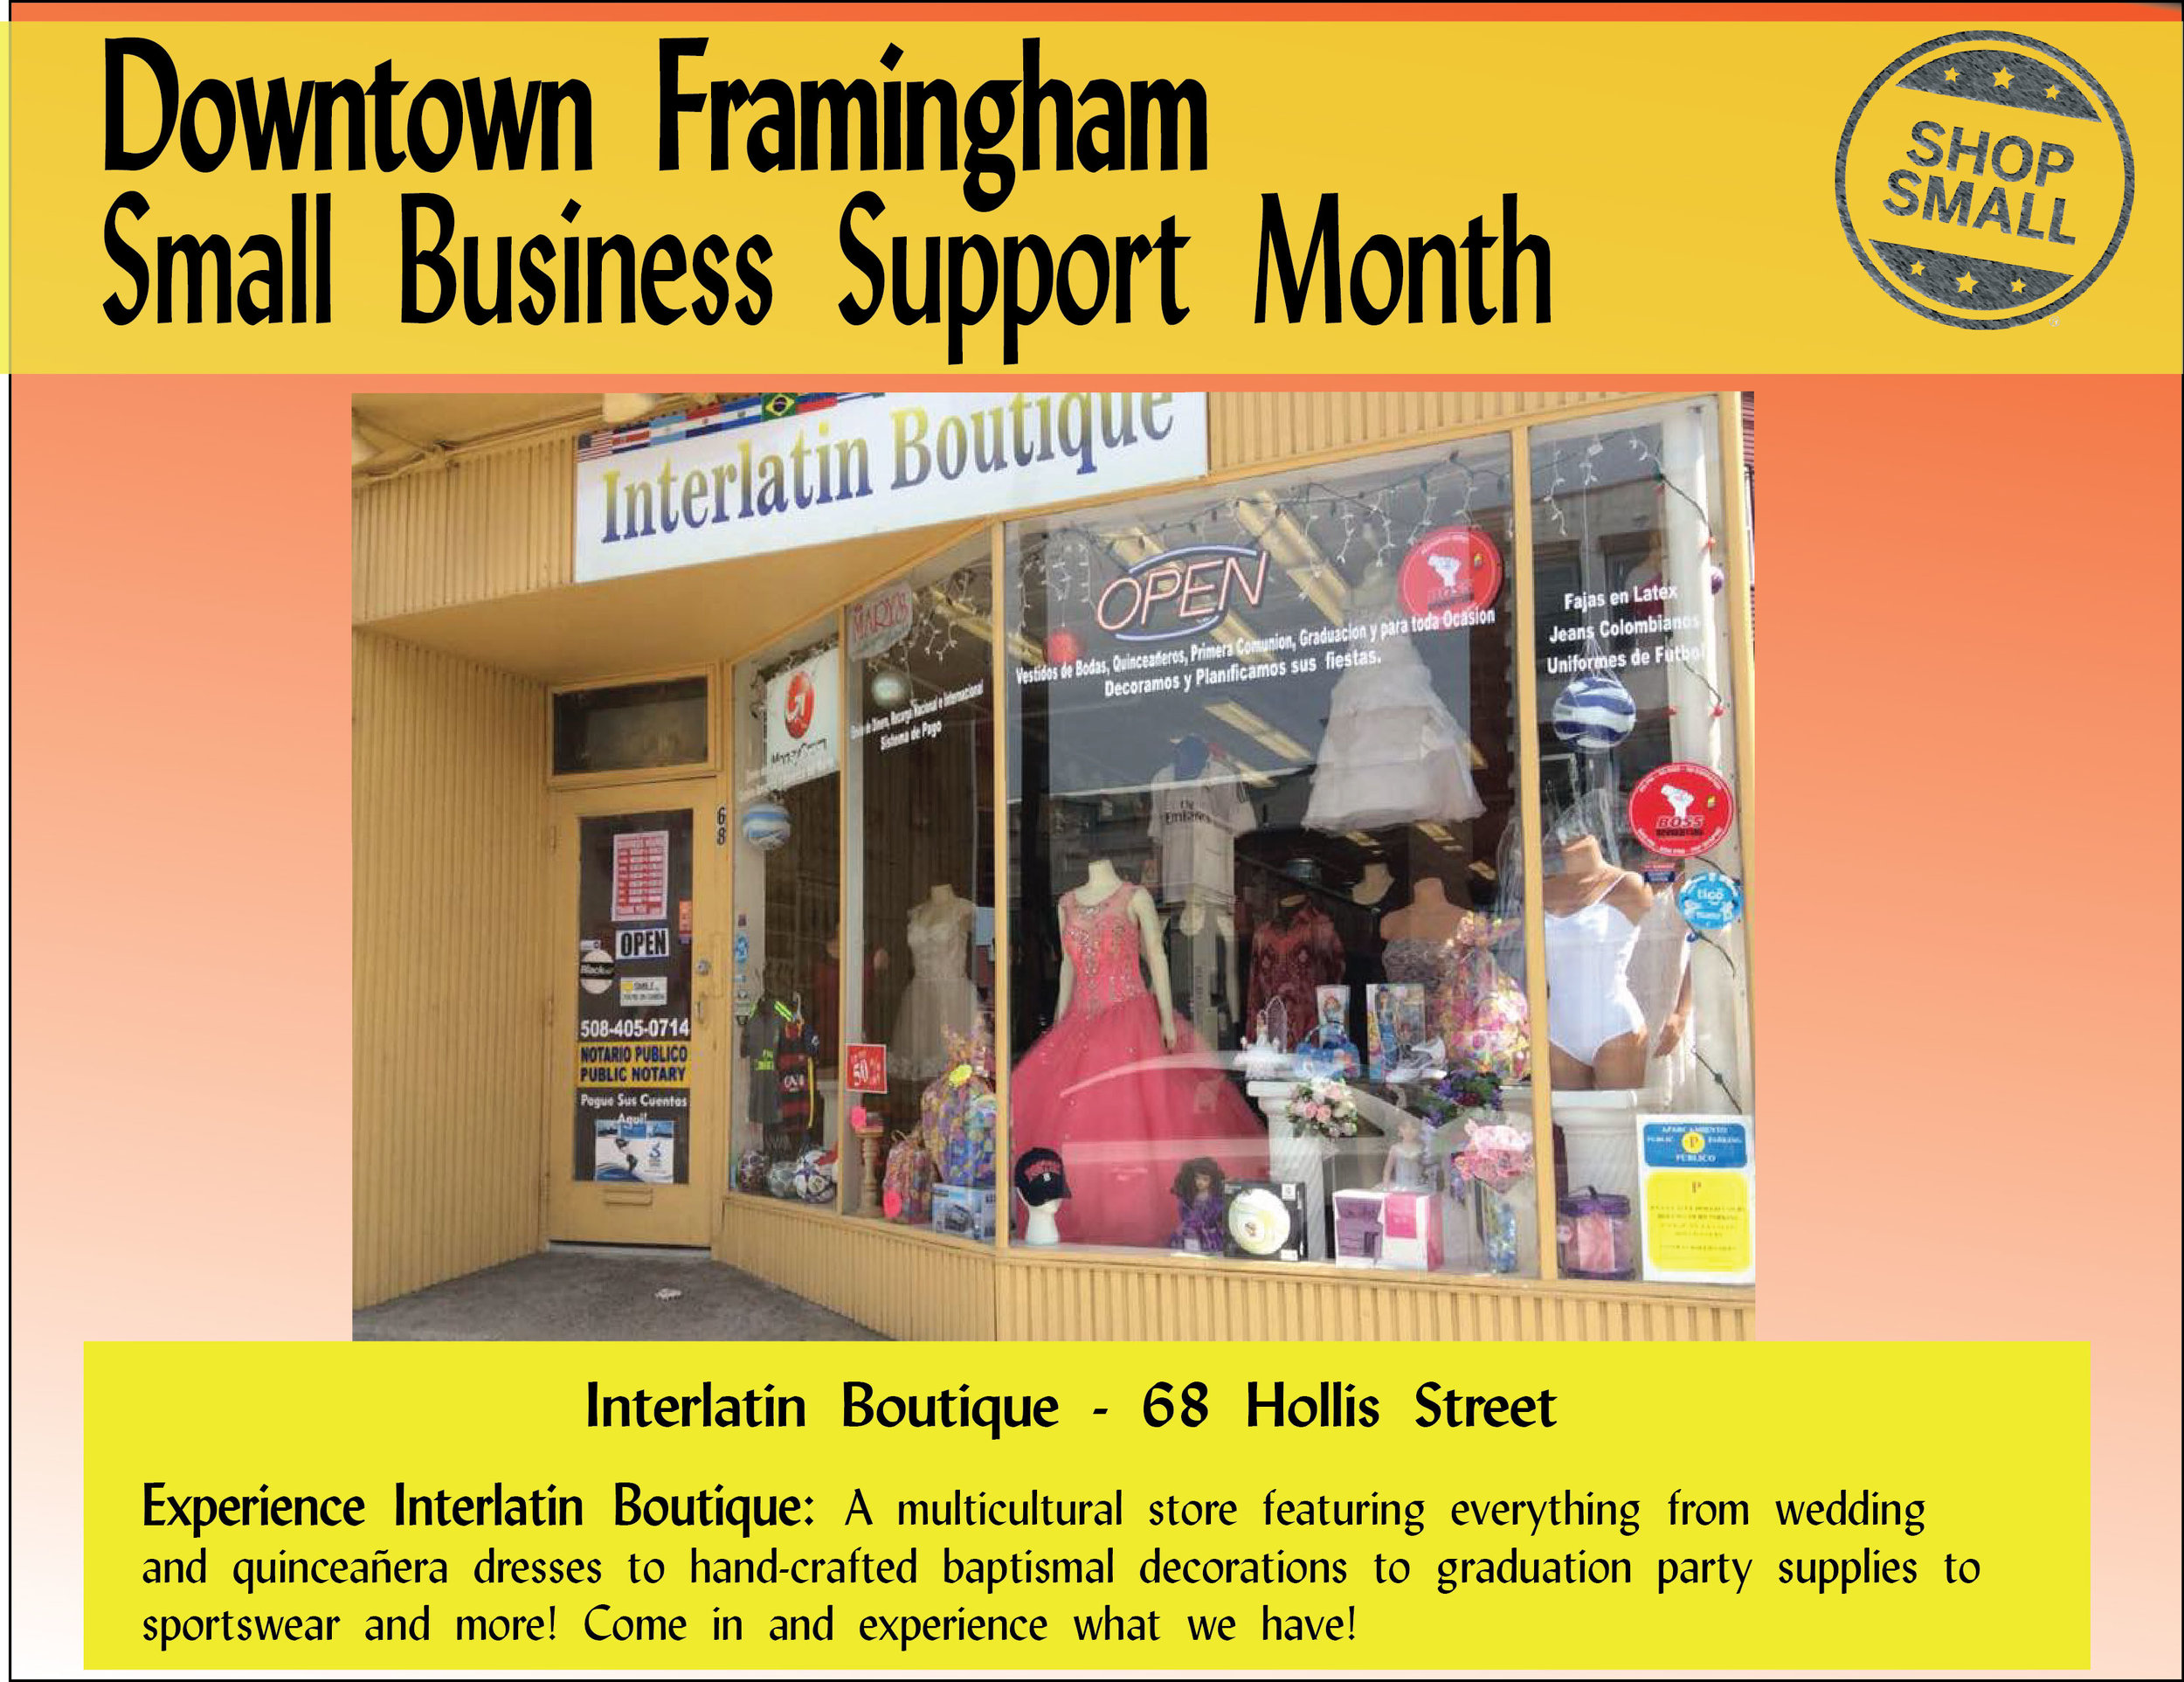 """It's Day 3 of Small Business Support Month! Reason #3:  """"Small businesses develop partnerships and strengthen ties with people in the neighborhood. Brick and mortar establishments serve as community hubs!"""" This is so apparent downtown!"""